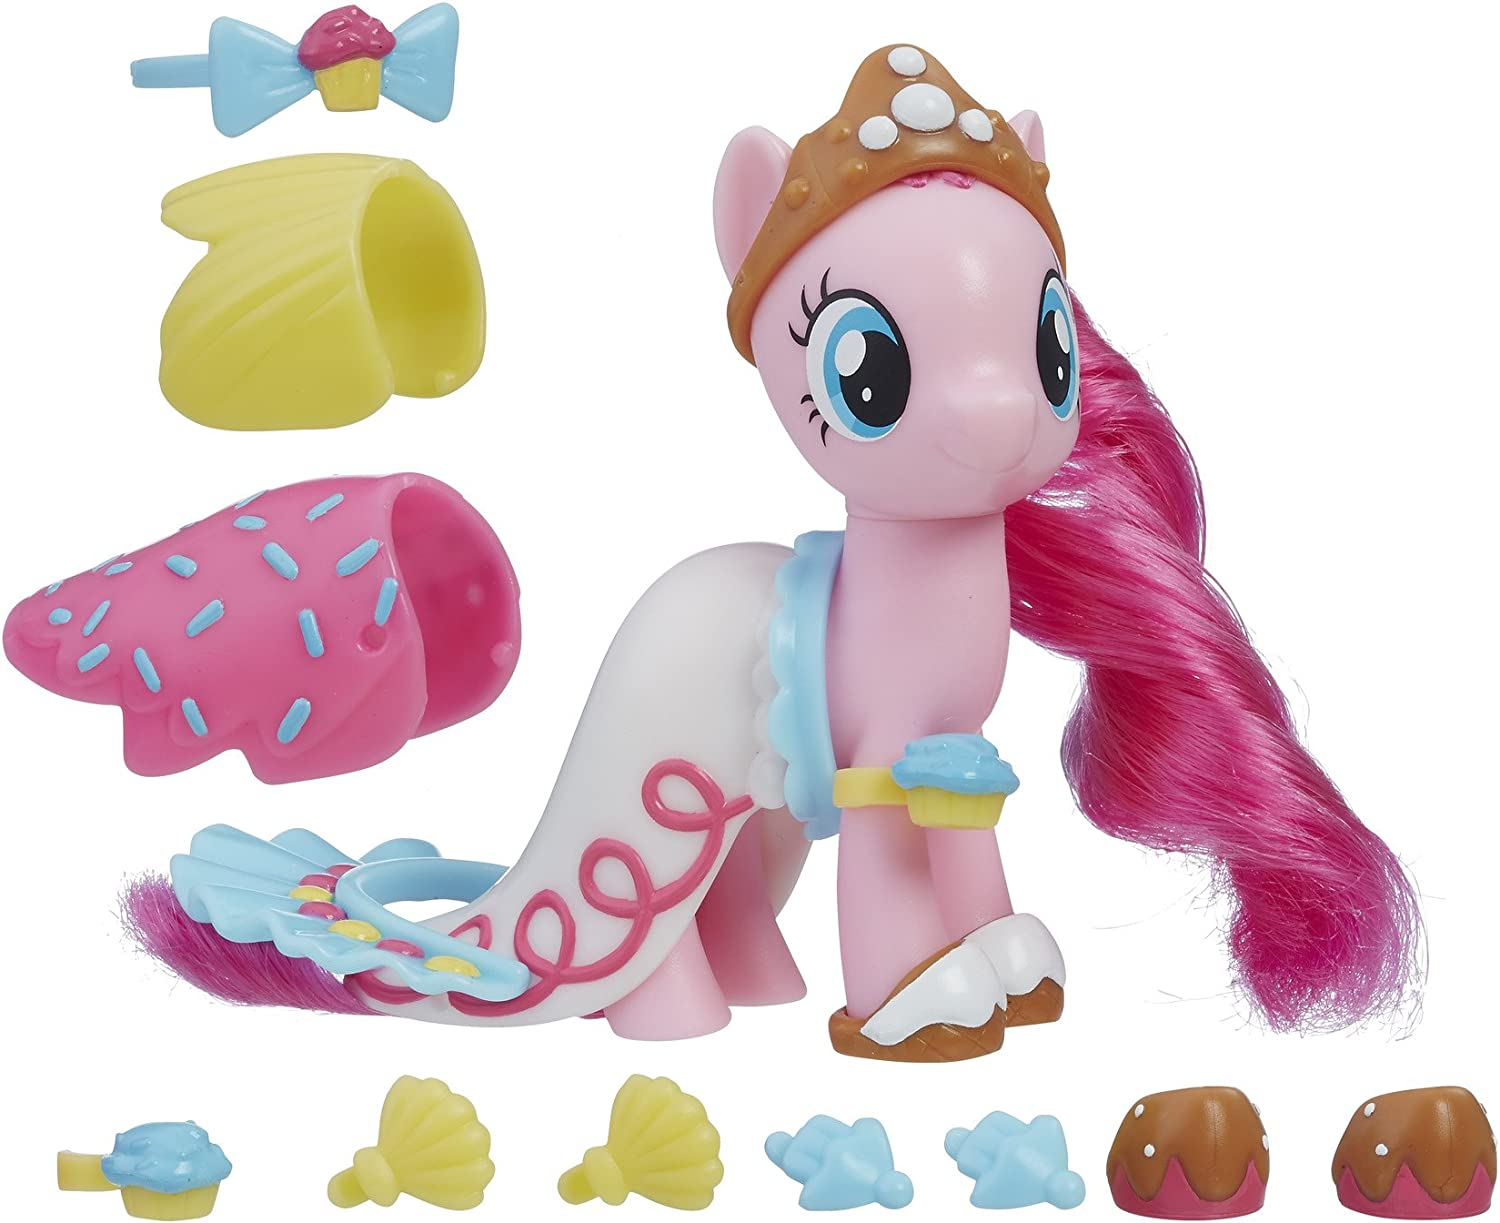 MLP My Little Pony The Movie Pinkie Pie Land and Sea FASHION STYLES